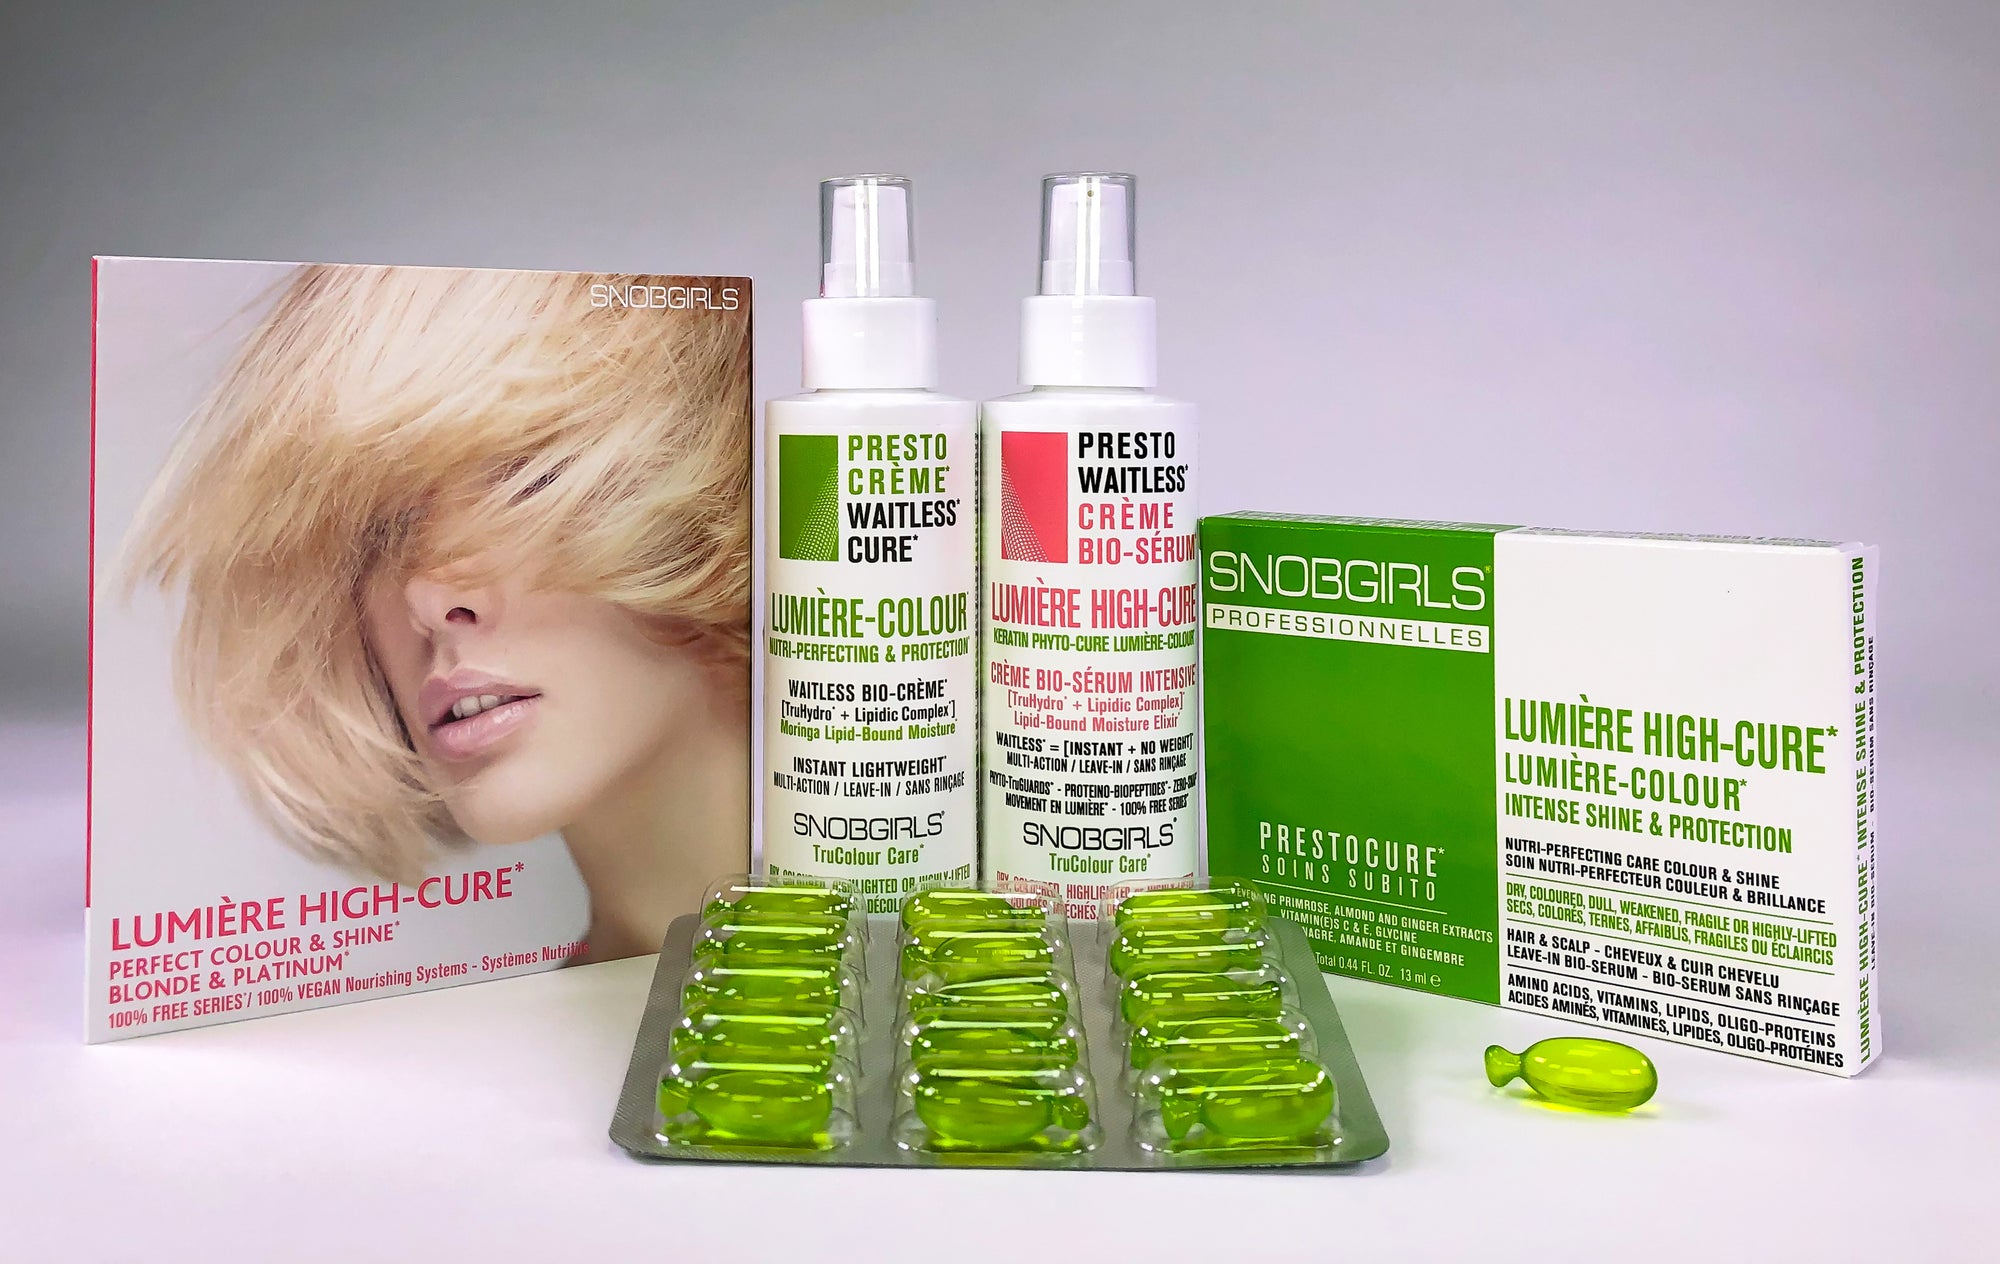 LUNIERE HIGH-CURE - INTENSIVE LEAVE-IN TREATMENTS SET - SNOBGIRLS.com